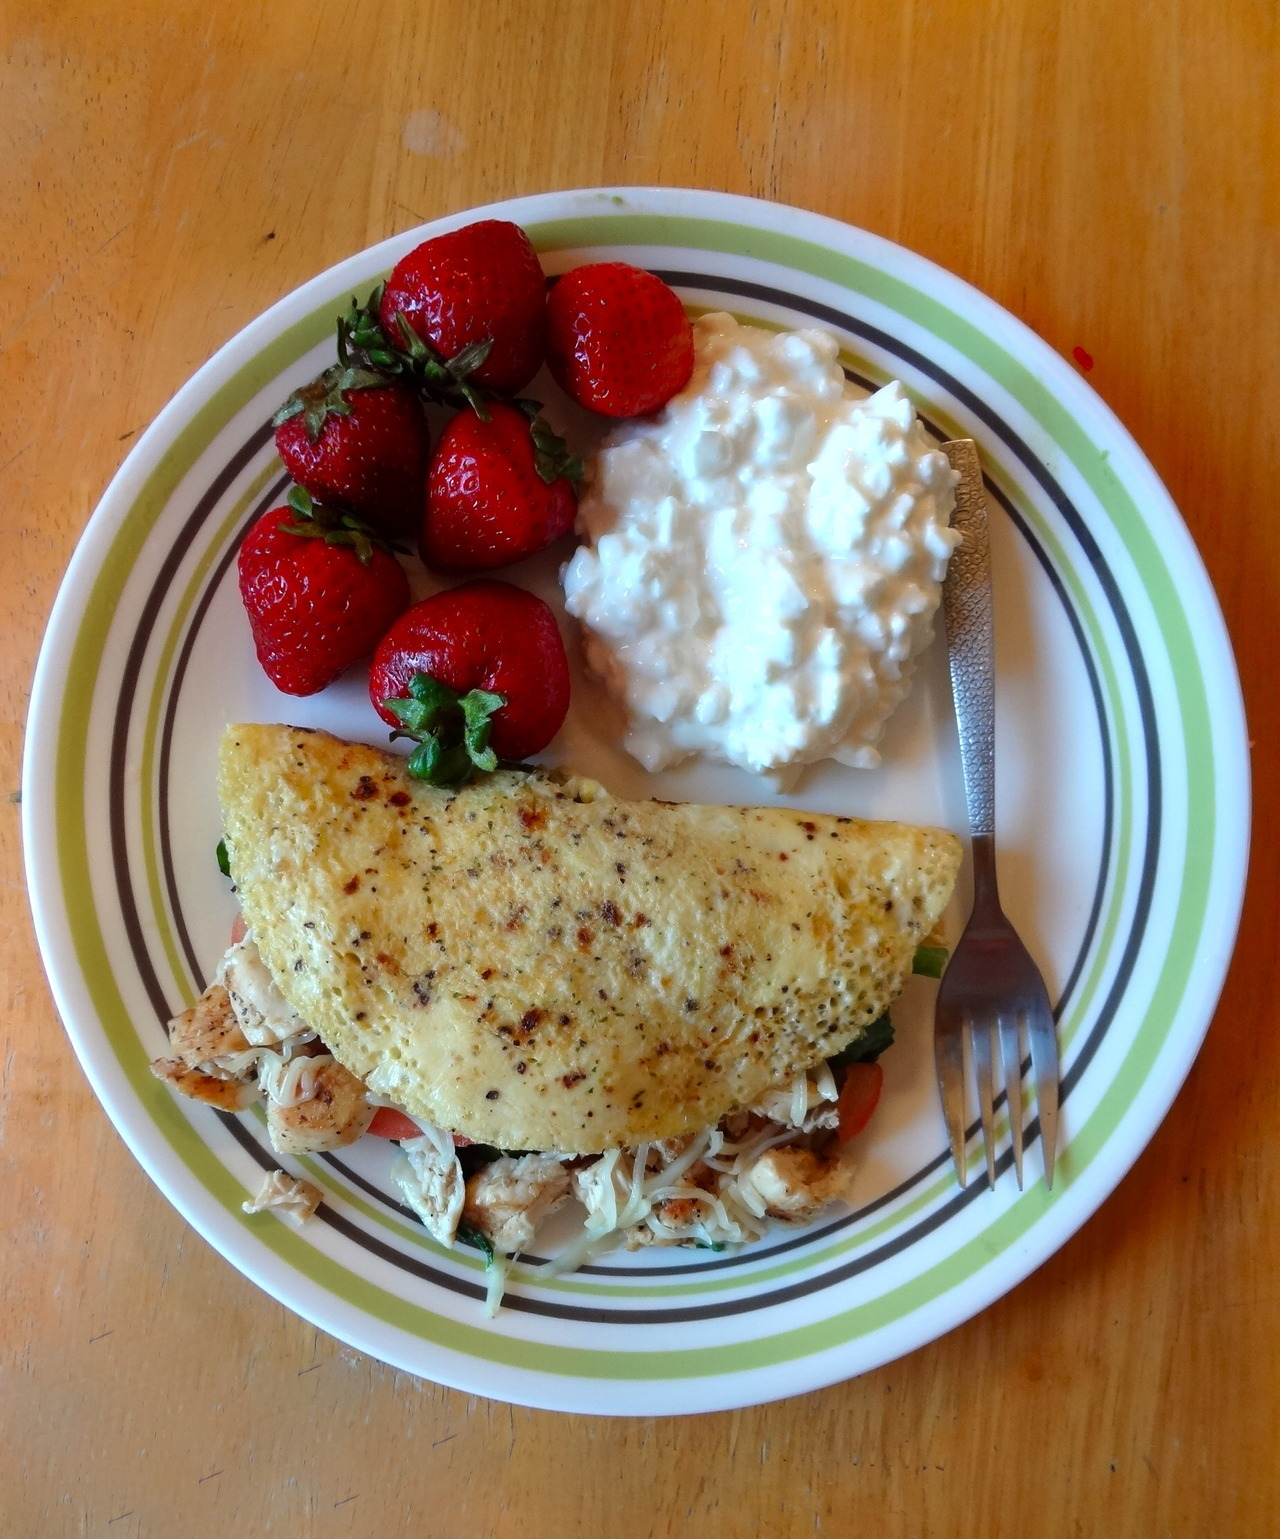 yeskasveggiessmellasgoodasbacon:  Chicken Omelette, Low-Fat Cottage Cheese, & Strawberries355 calories; 12 net carbs  I see what you did there, you wrapped a chicken in it's offspring. The Horror! JK